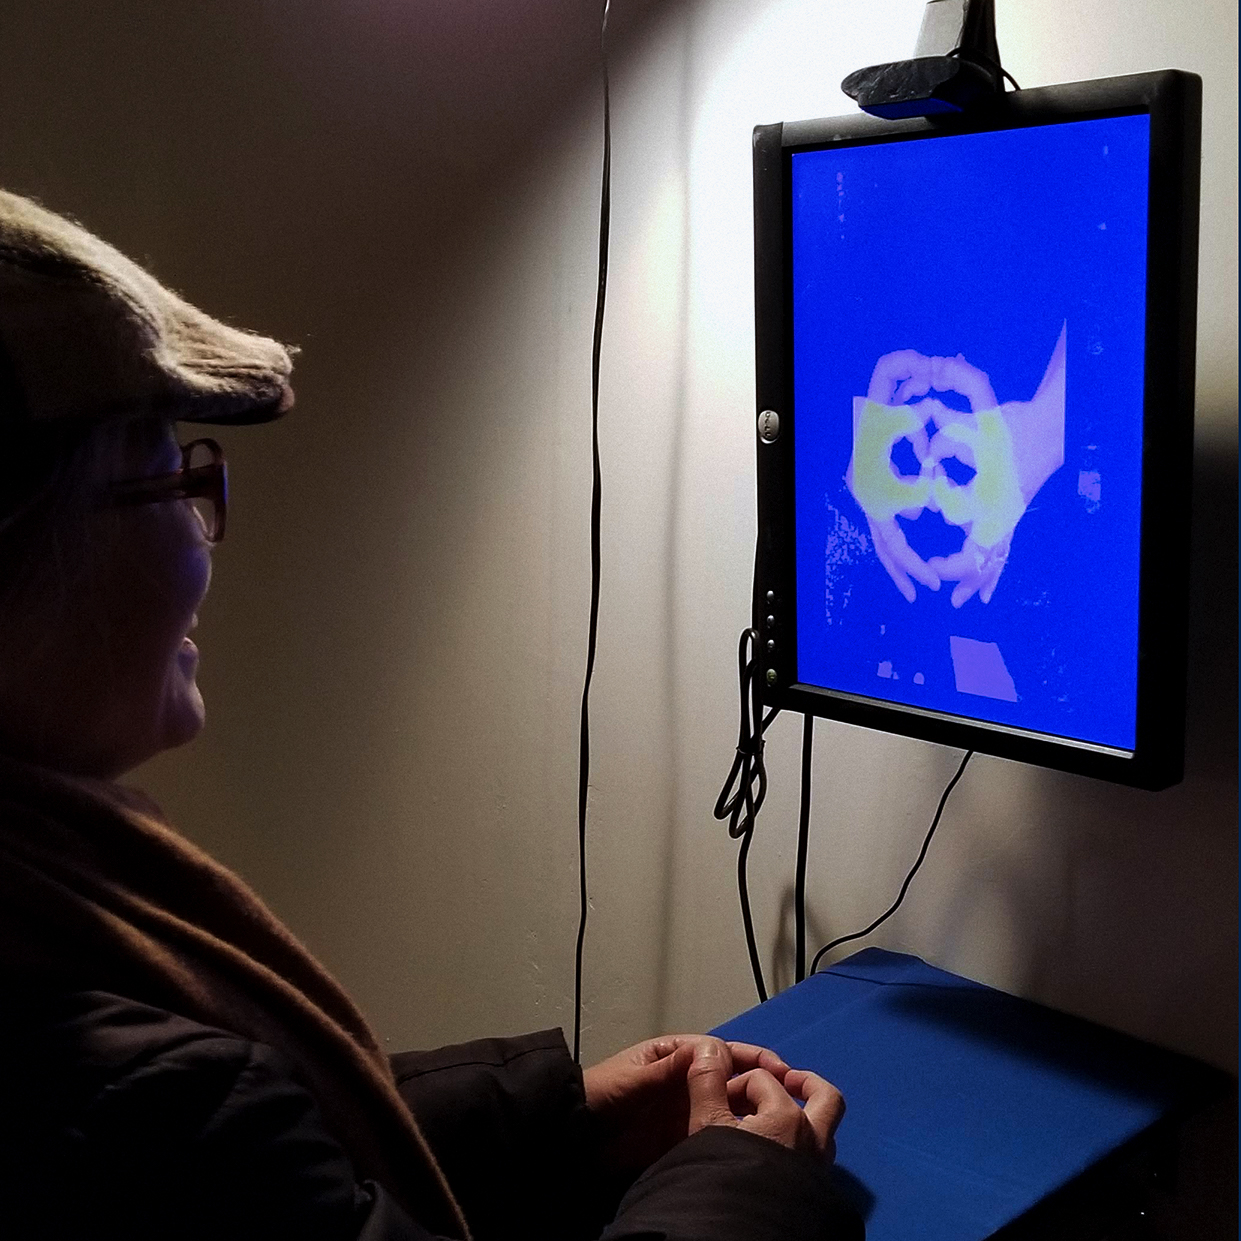 A viewer interacts with the installation, causing her hands to display an image of a shadow puppet on the screen.